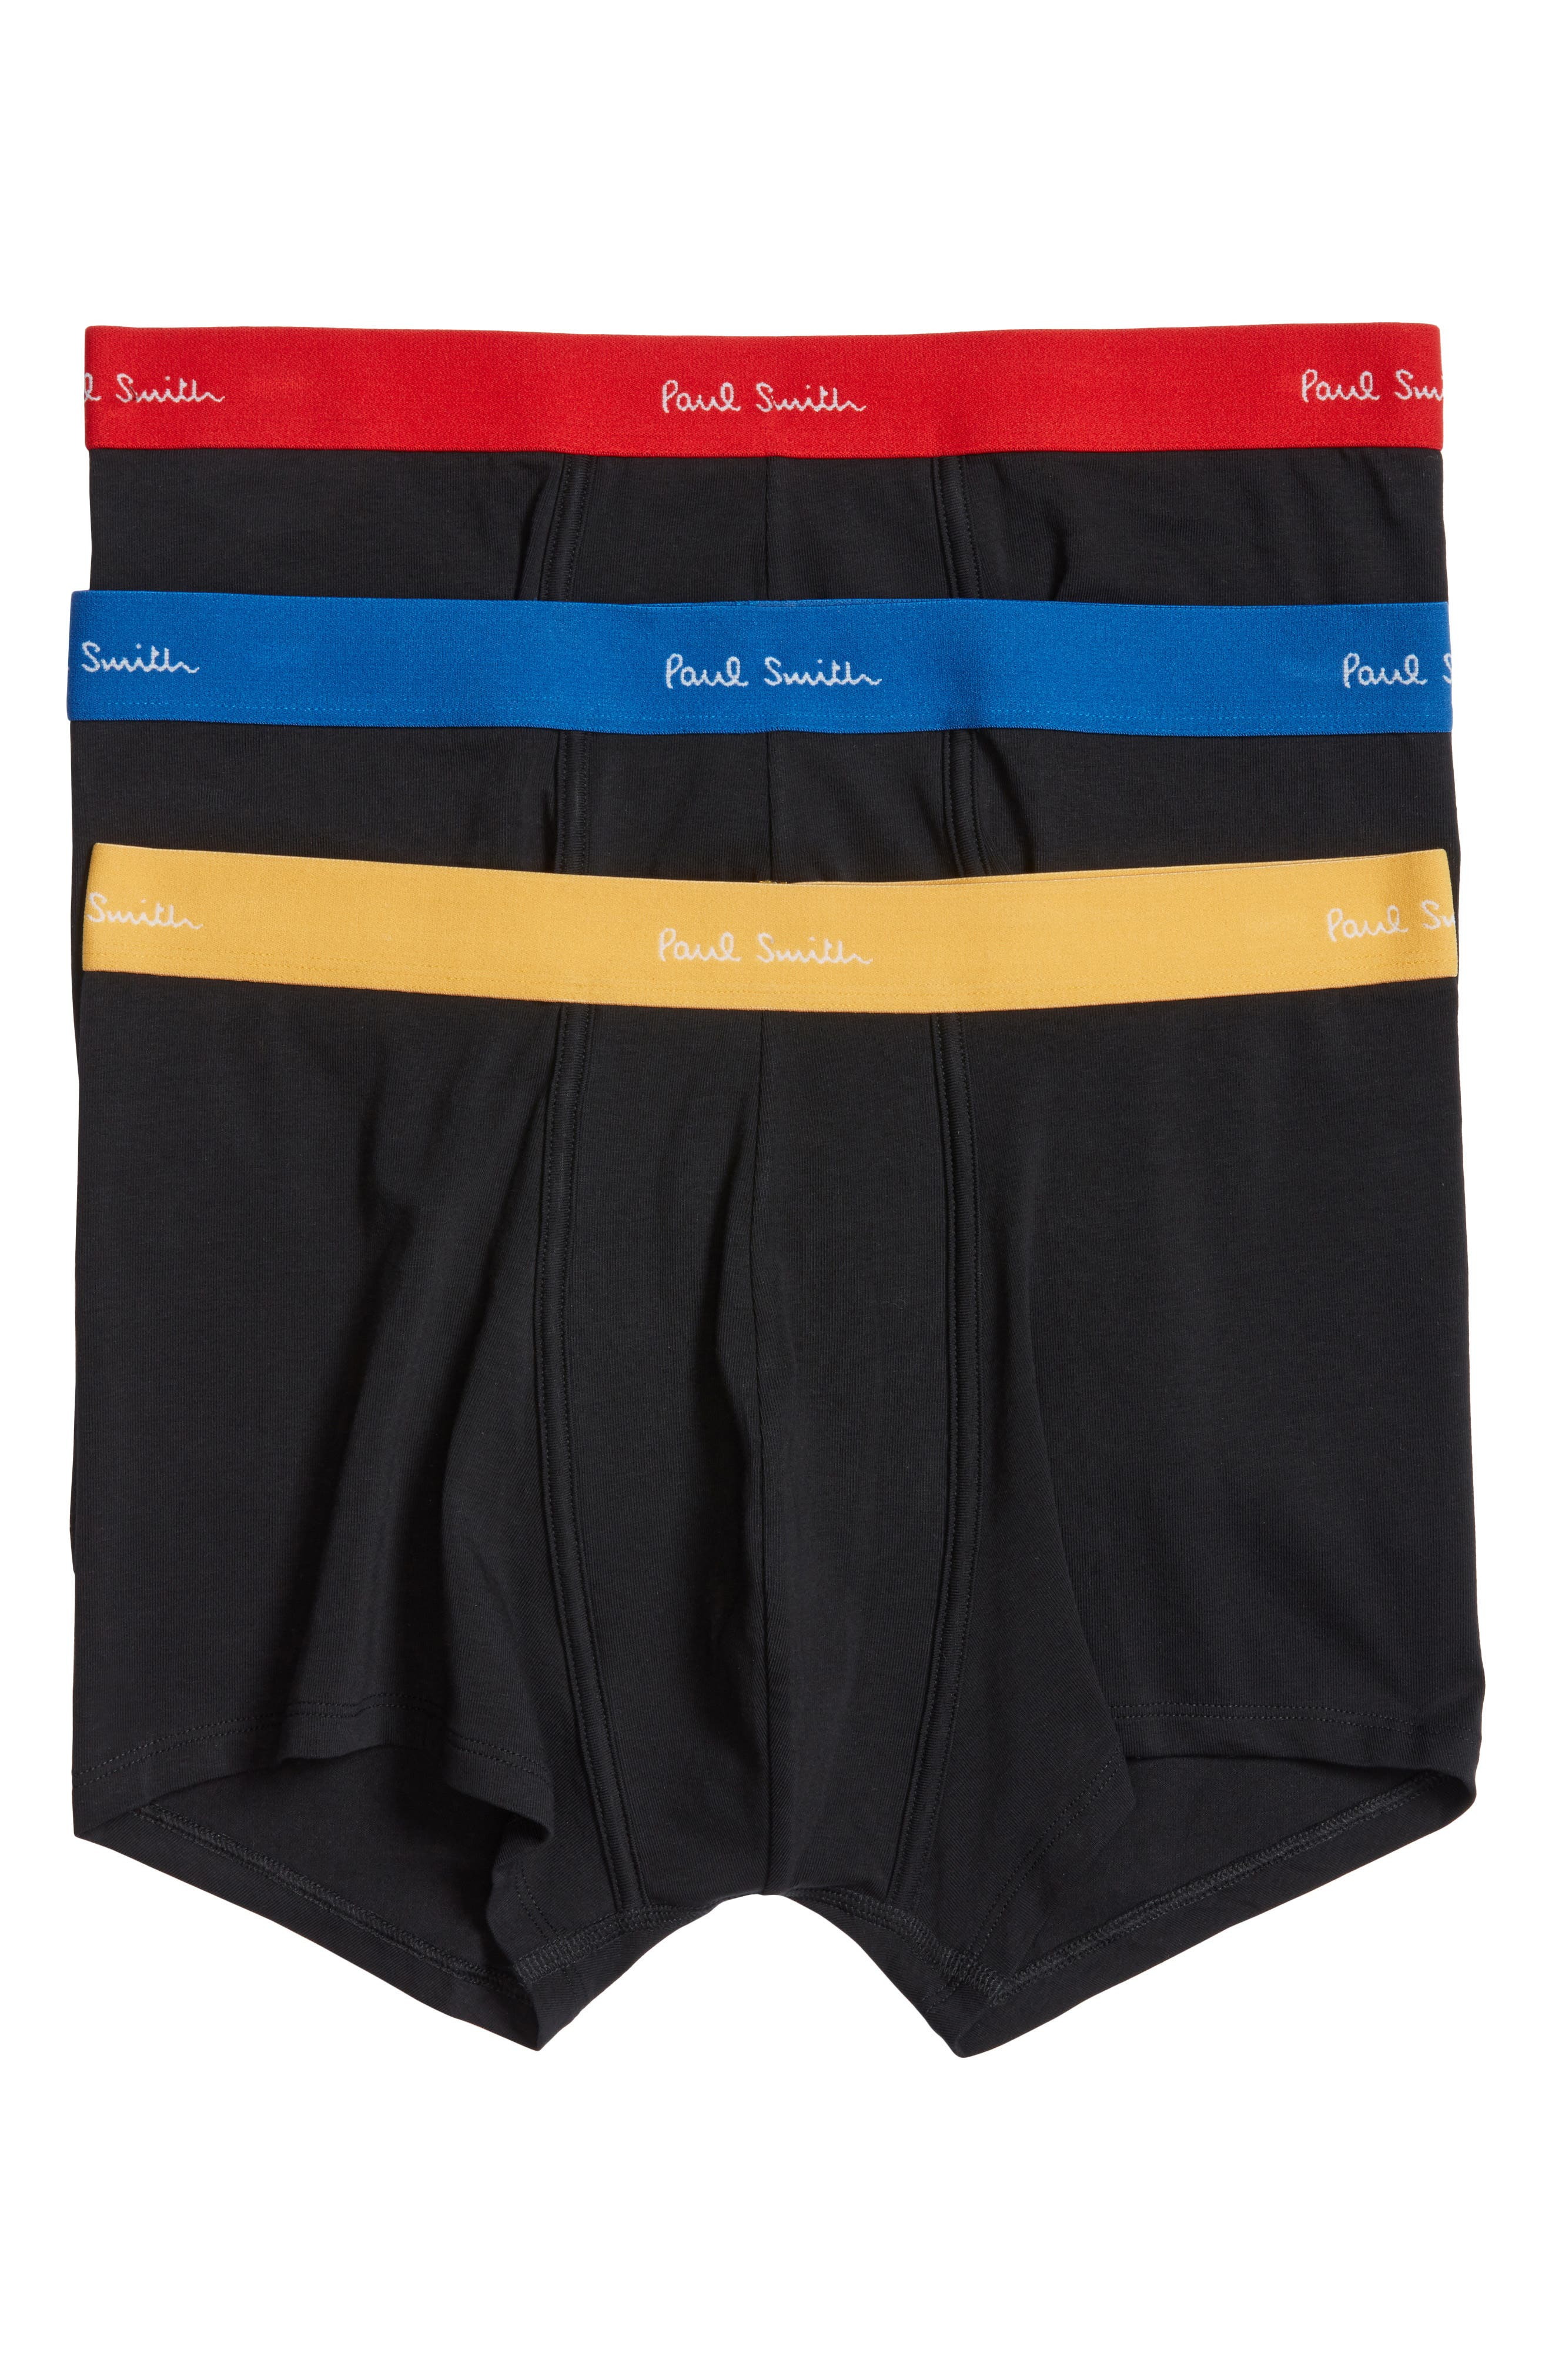 3-Pack Assorted Square Cut Trunks,                         Main,                         color, 018